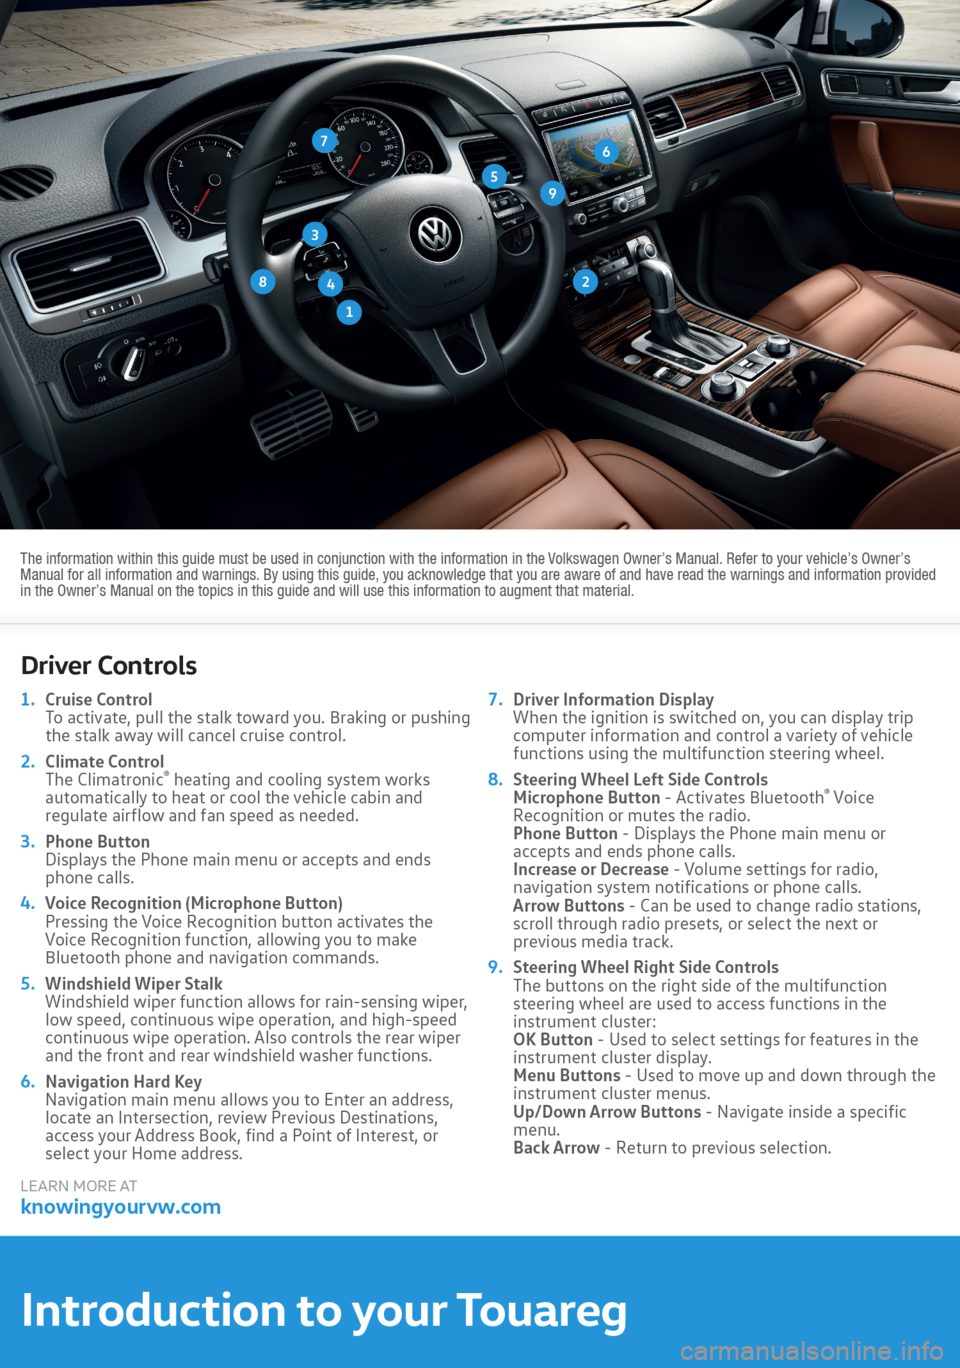 VOLKSWAGEN TOUAREG 2016 2.G Quick Start Guide, Page 2